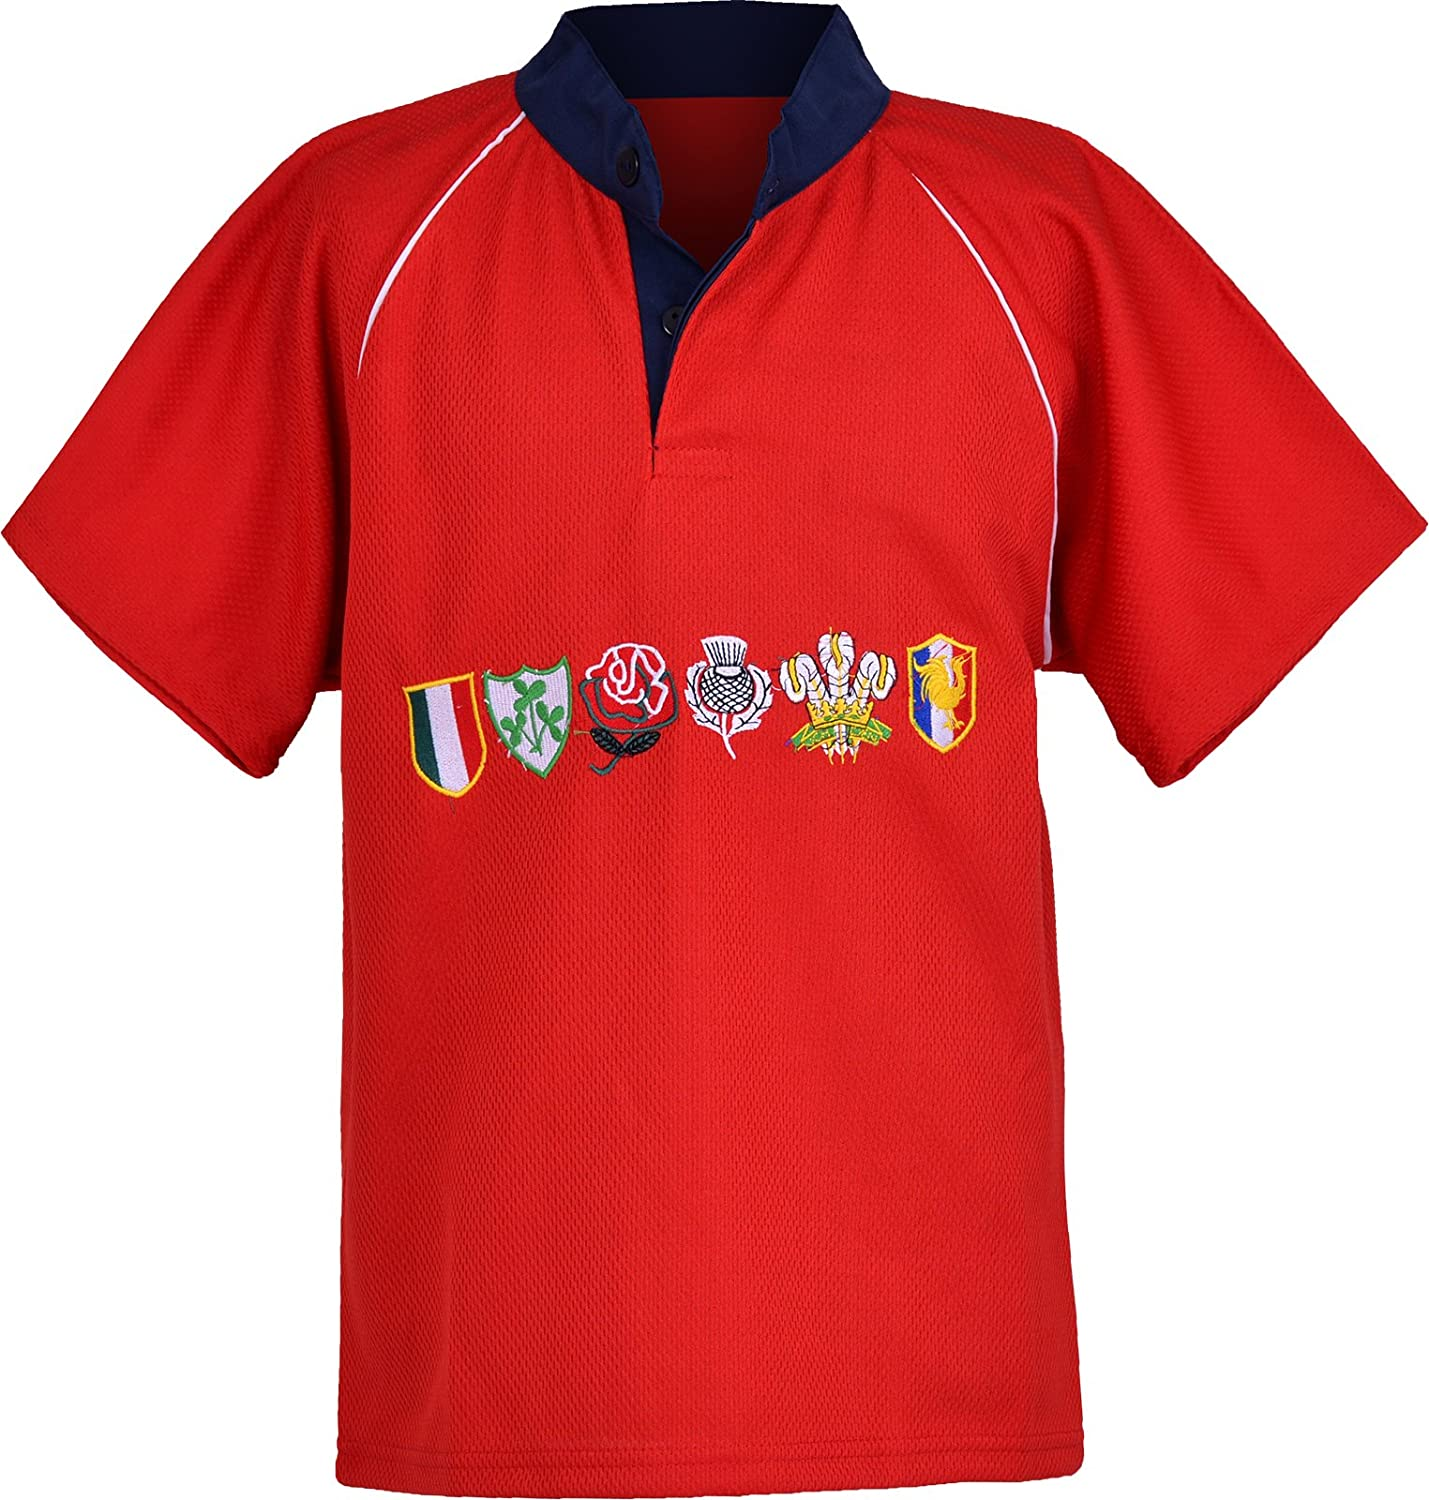 Activewear Children 6 Nation Rugby Shirts Size 3/4Y to 11/12 Year (2XL 11/12Y, RED) NMK6NRS01